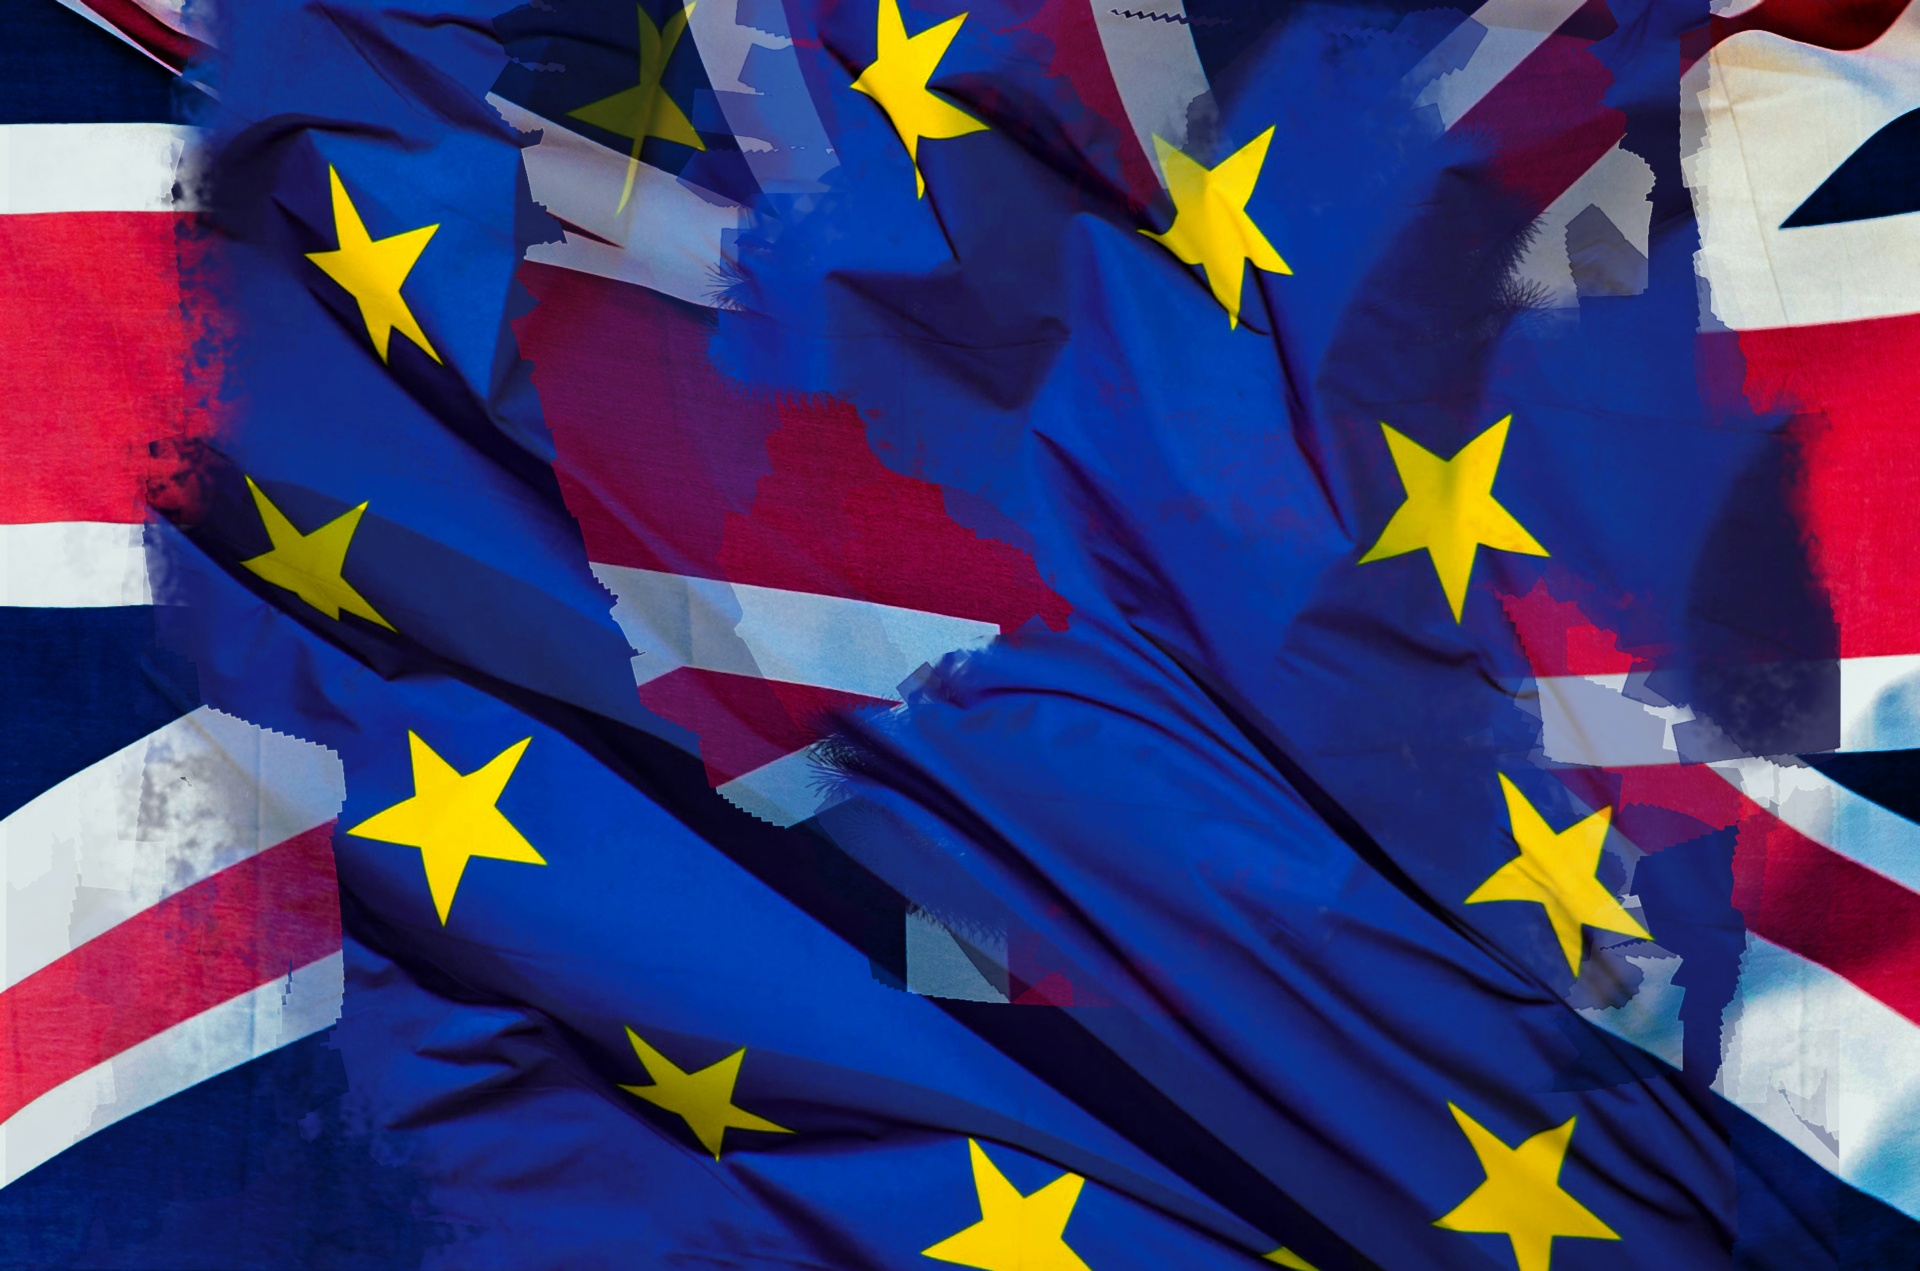 Welsh Business Leaders say Unanswered Brexit Questions Not Good Enough